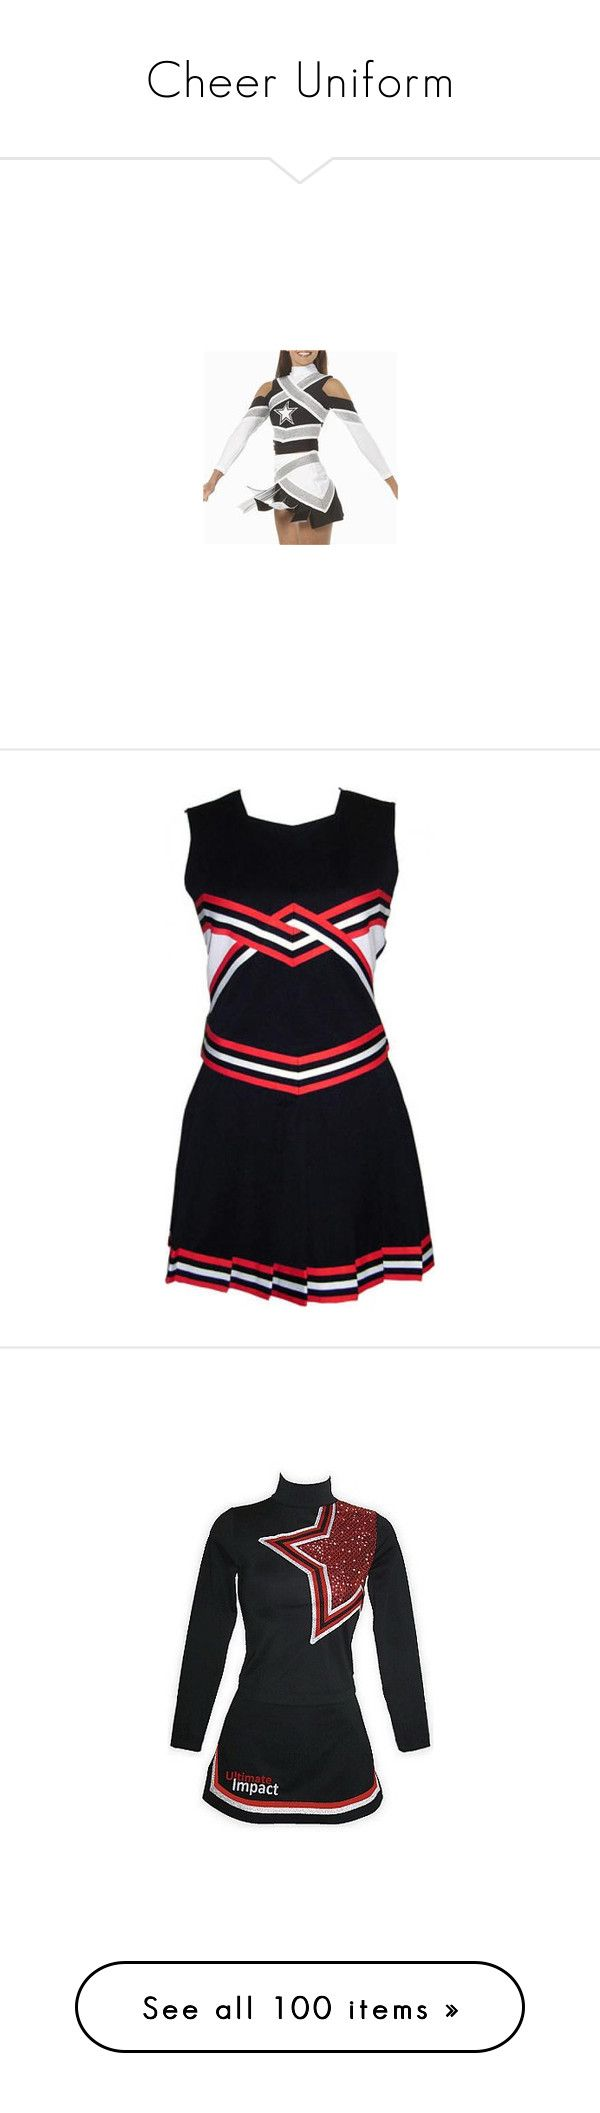 """""""Cheer Uniform"""" by hannah-e ❤ liked on Polyvore featuring cheerleading, cheer, sports, cheer uniform, cheer/dance, dresses, home, kitchen & dining, uniform and cheerleading uniforms"""